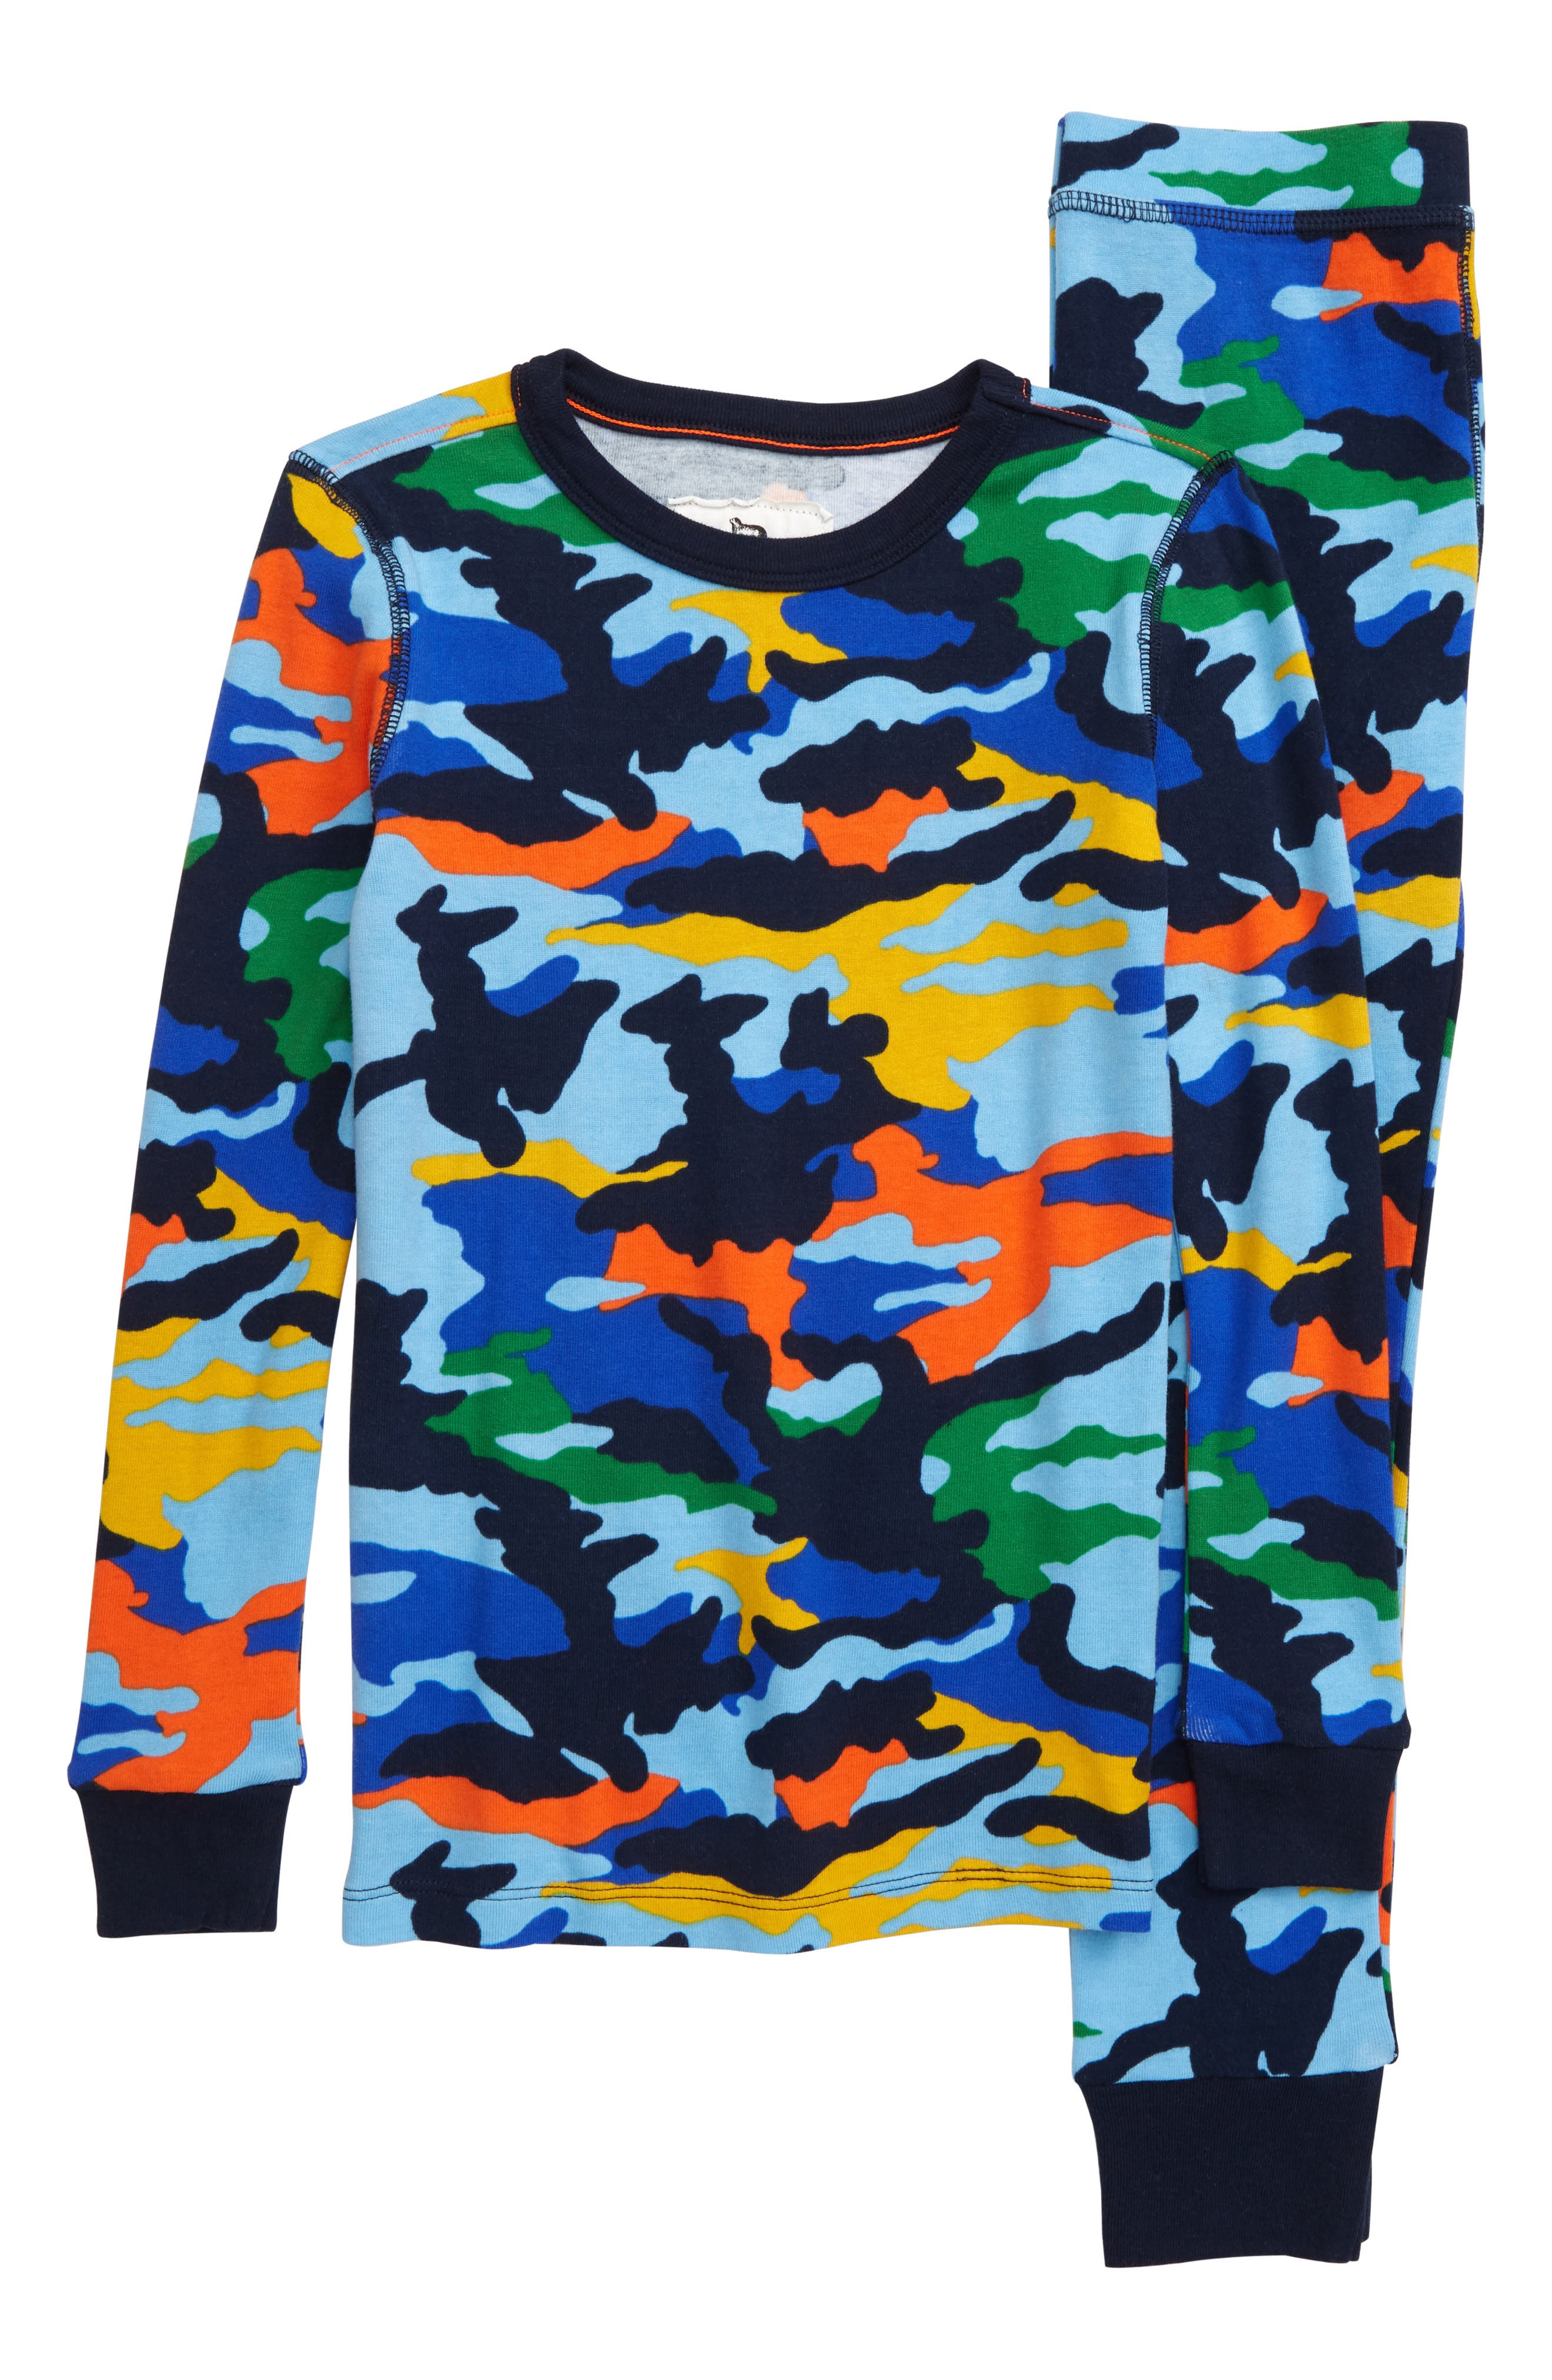 Toddler Boys Crewcuts By Jcrew Flashy Camo Print Fitted TwoPiece Pajamas Size 2T  Blue